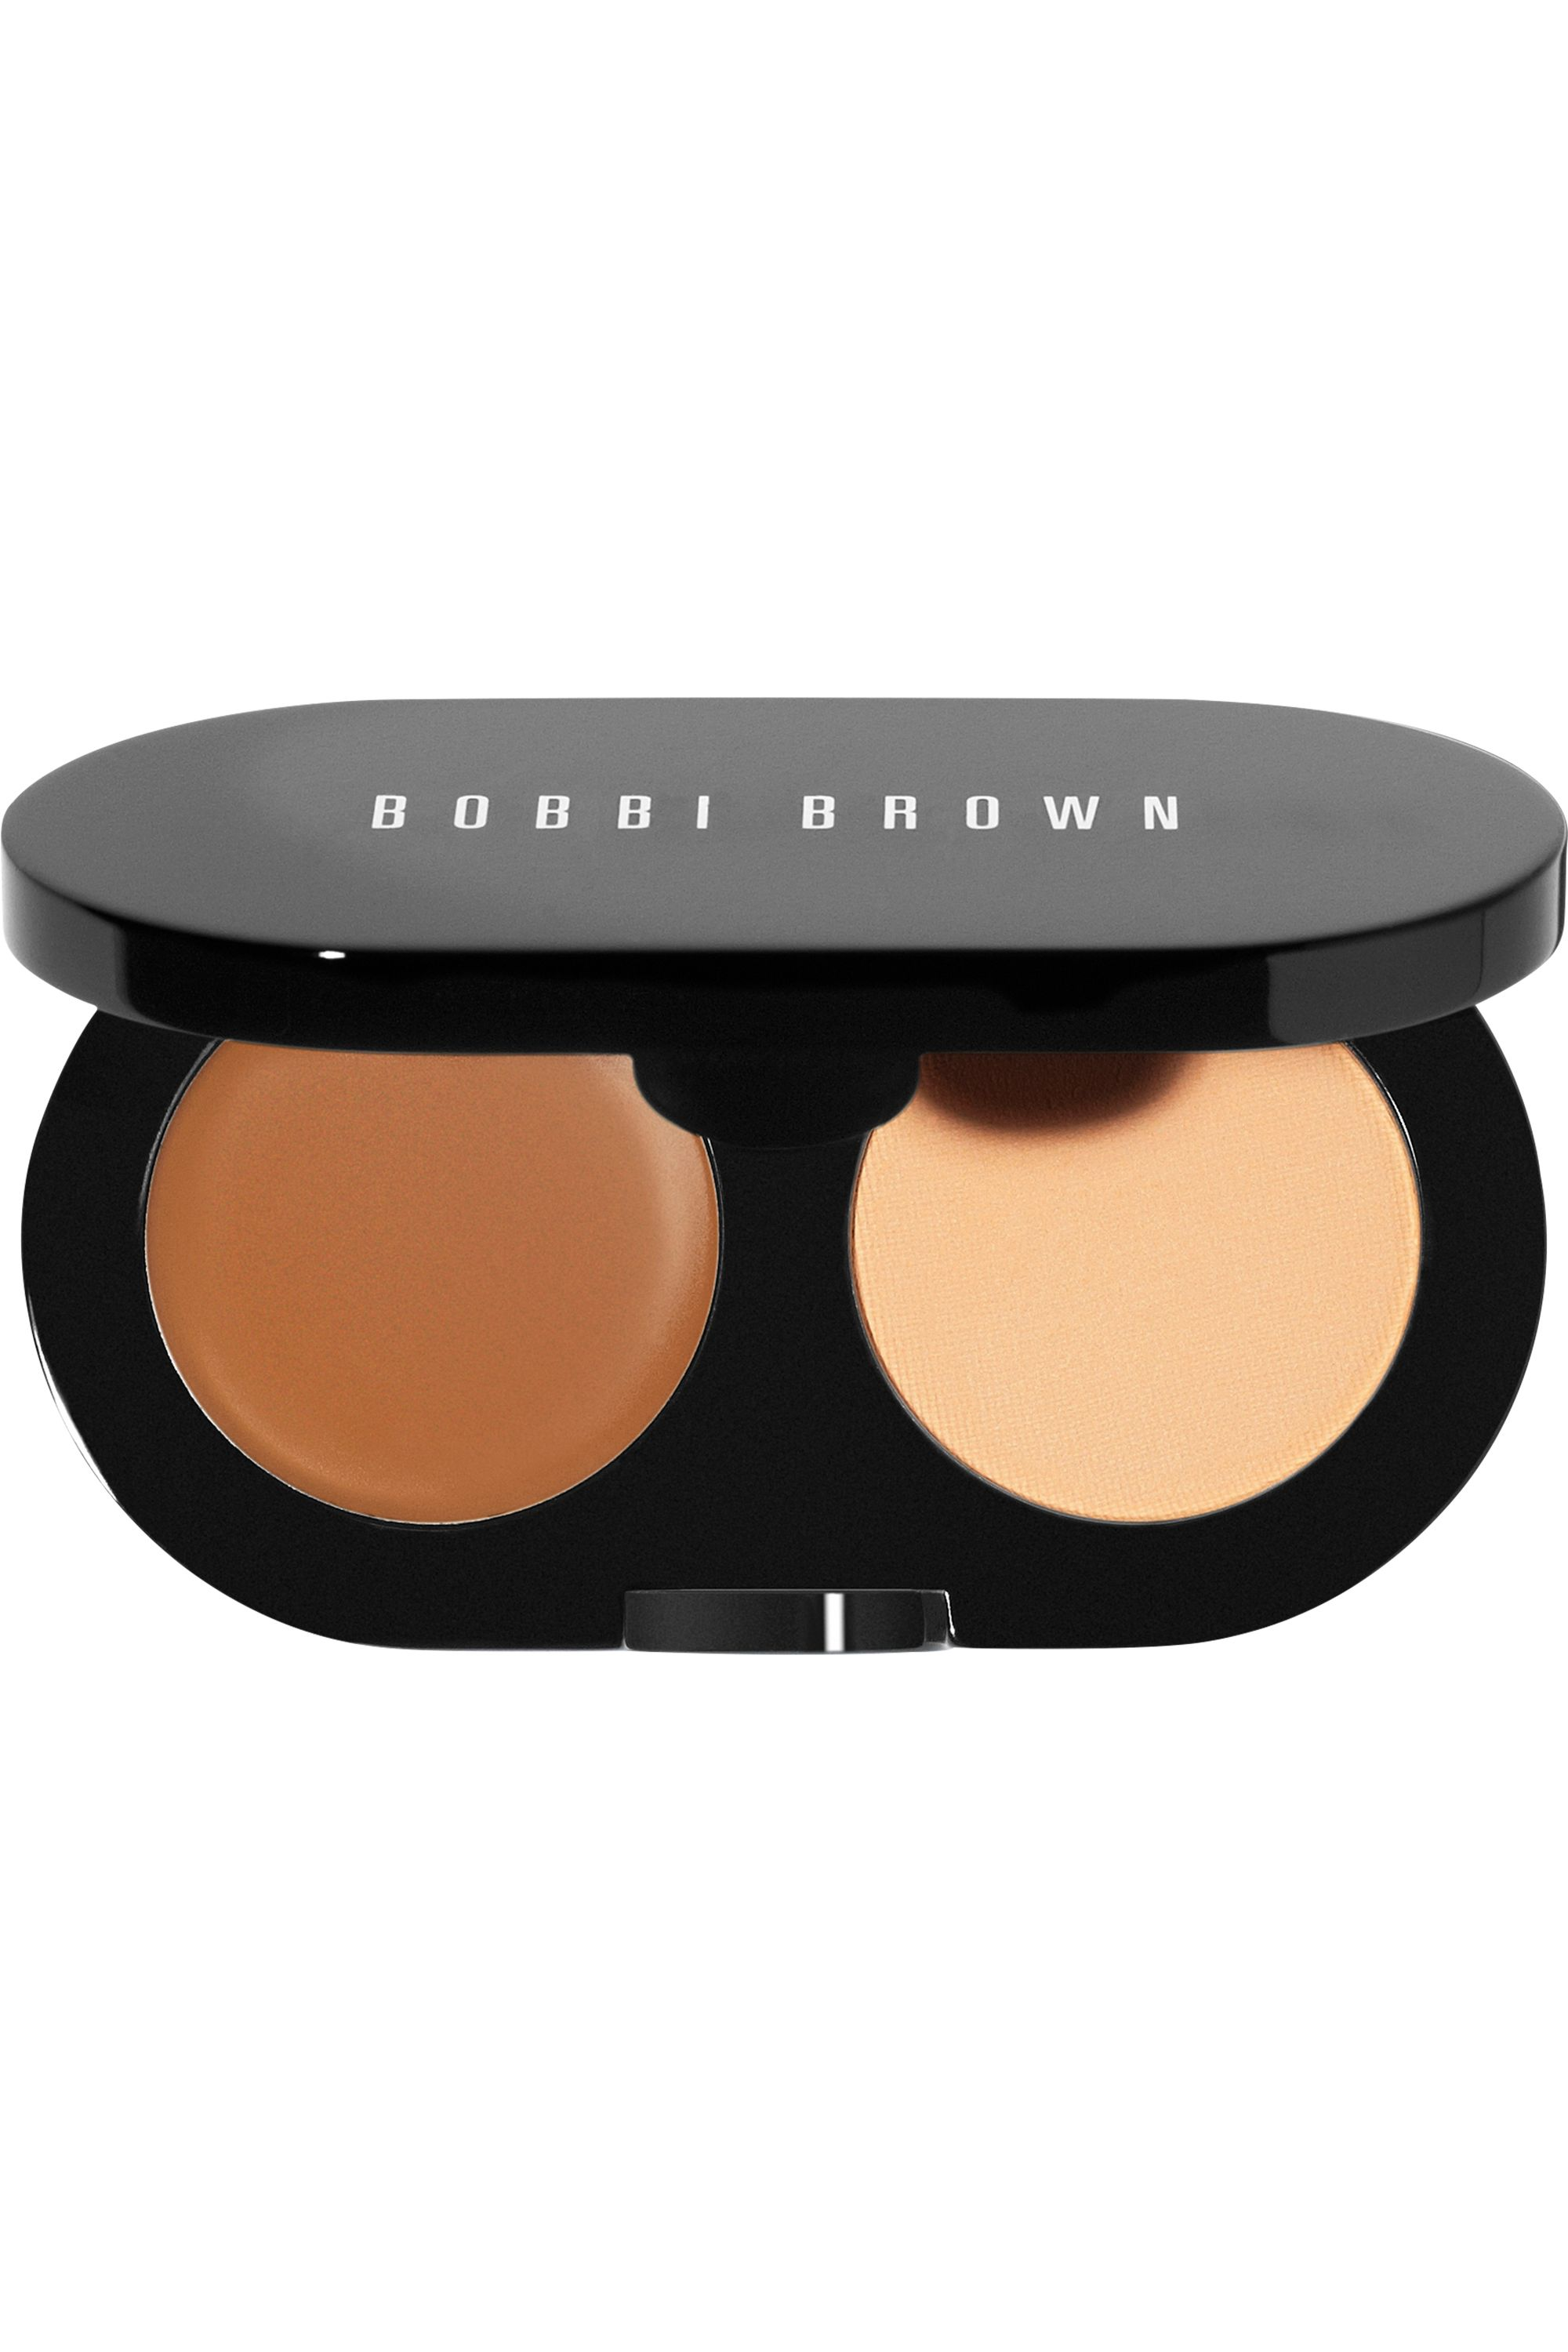 Blissim : Bobbi Brown - Kit anti-cernes Creamy Concealer Kit - Soft Honey/Almond